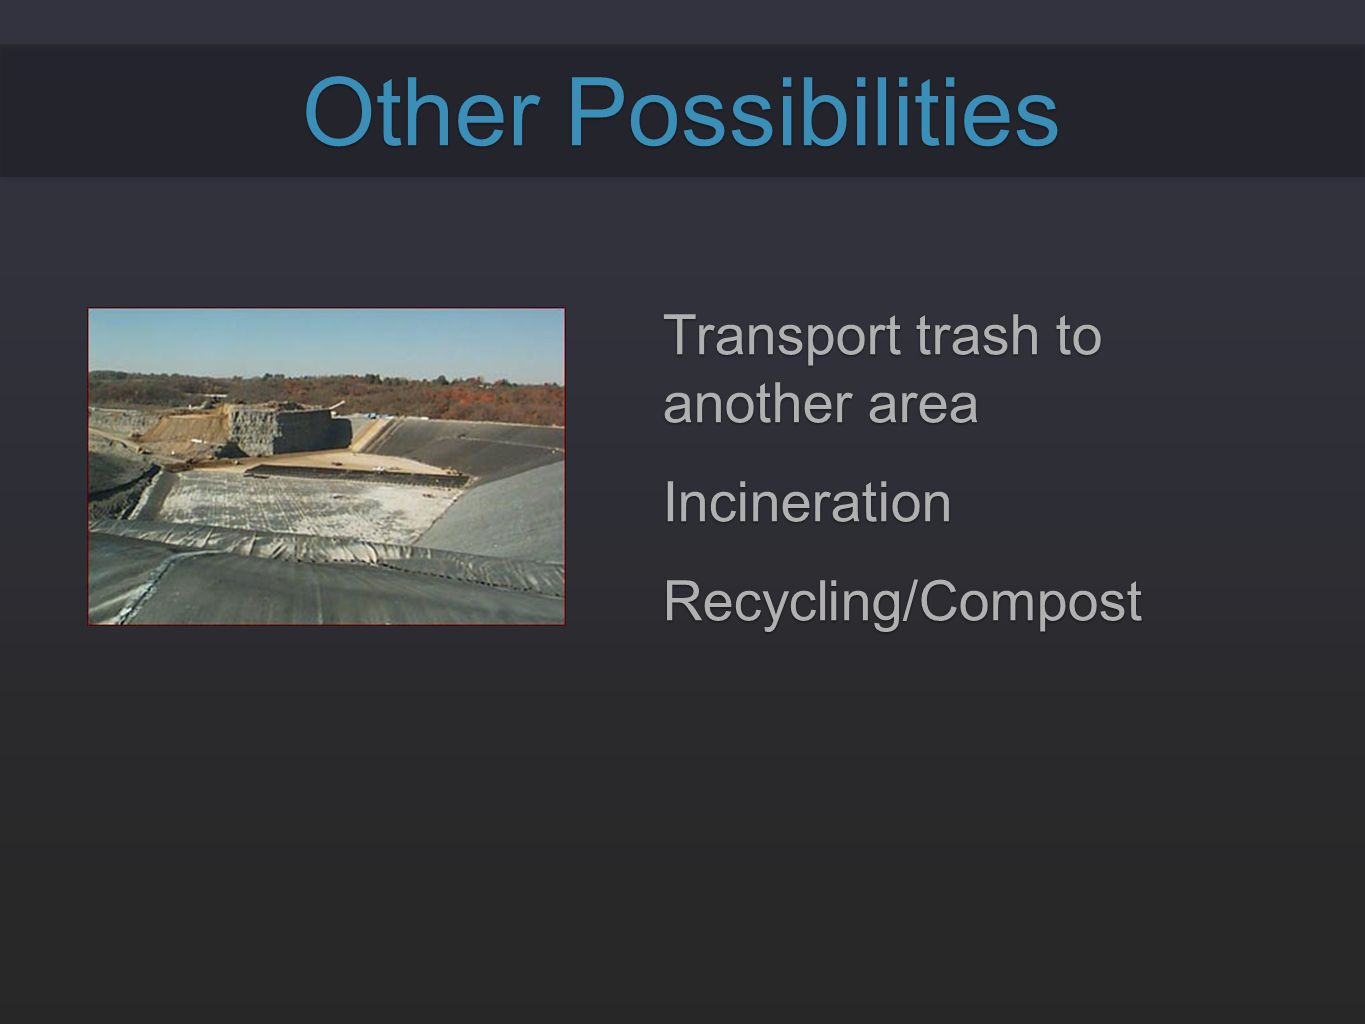 Other Possibilities Transport trash to another area Incineration Recycling/Compost Transport trash to another area Incineration Recycling/Compost